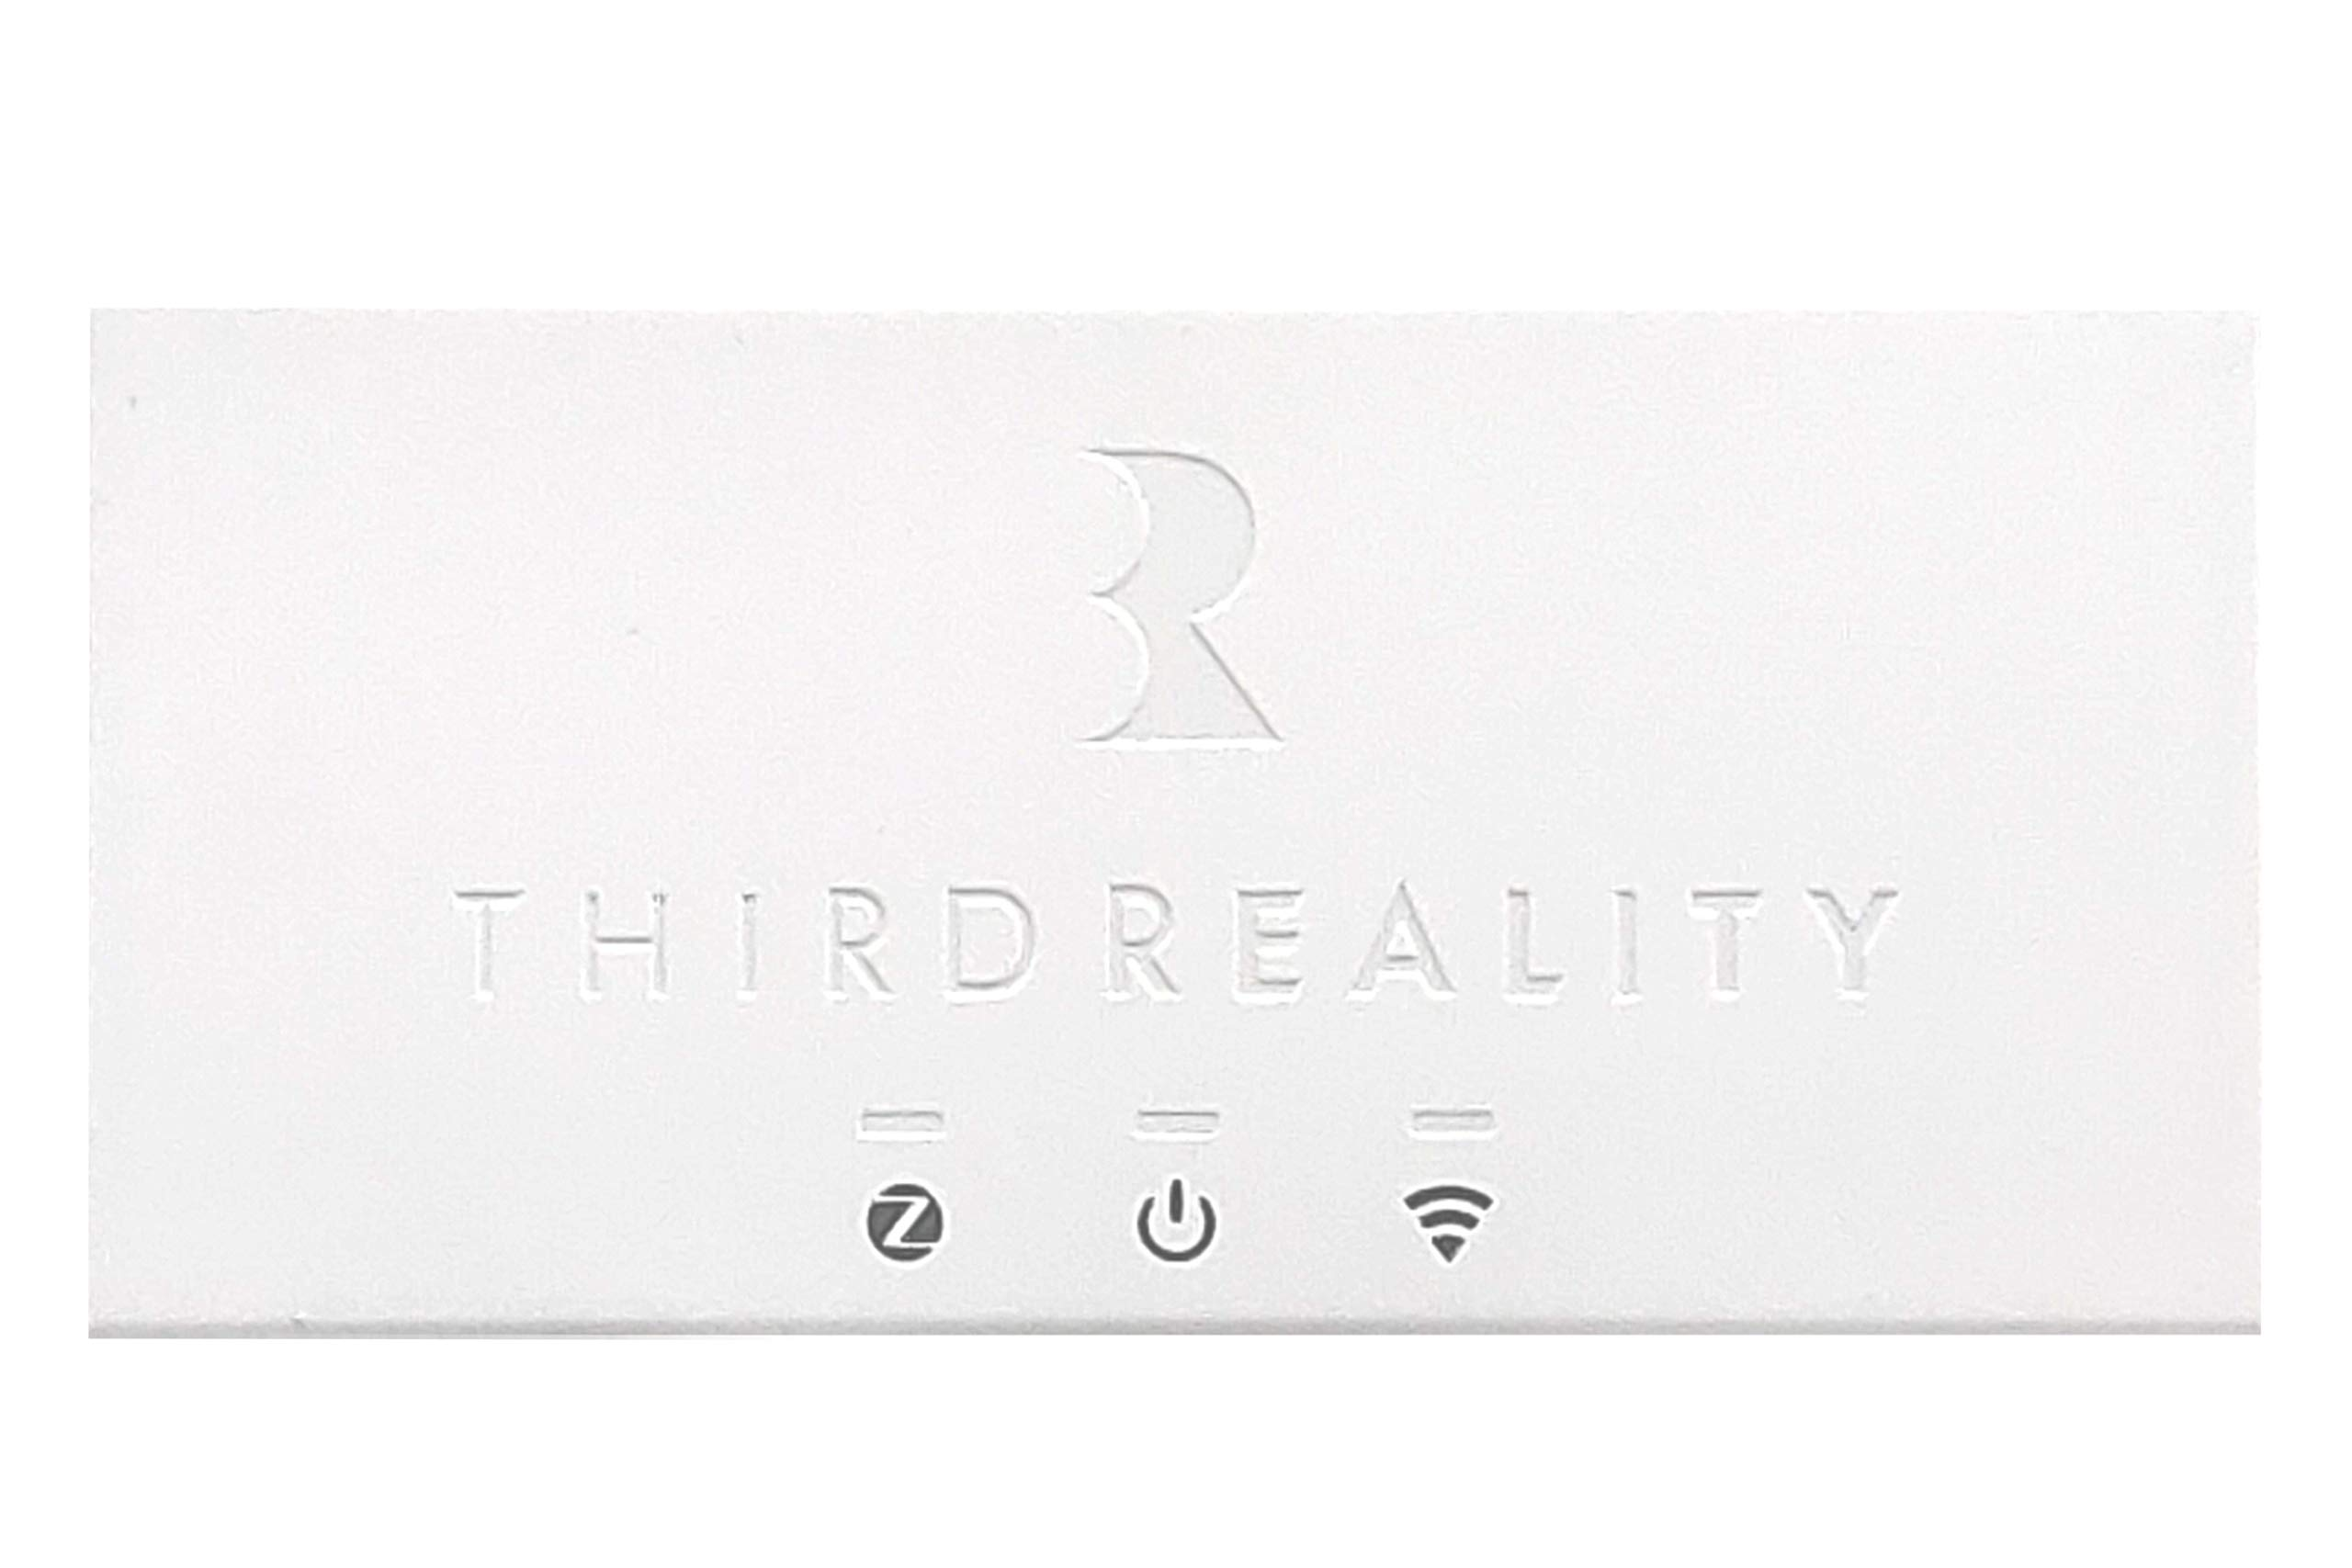 THIRDREALITY Smart Hub (with power adapter) - Smart Home Automation Hub, works with Alexa and Google Home, enable your Zigbee devices